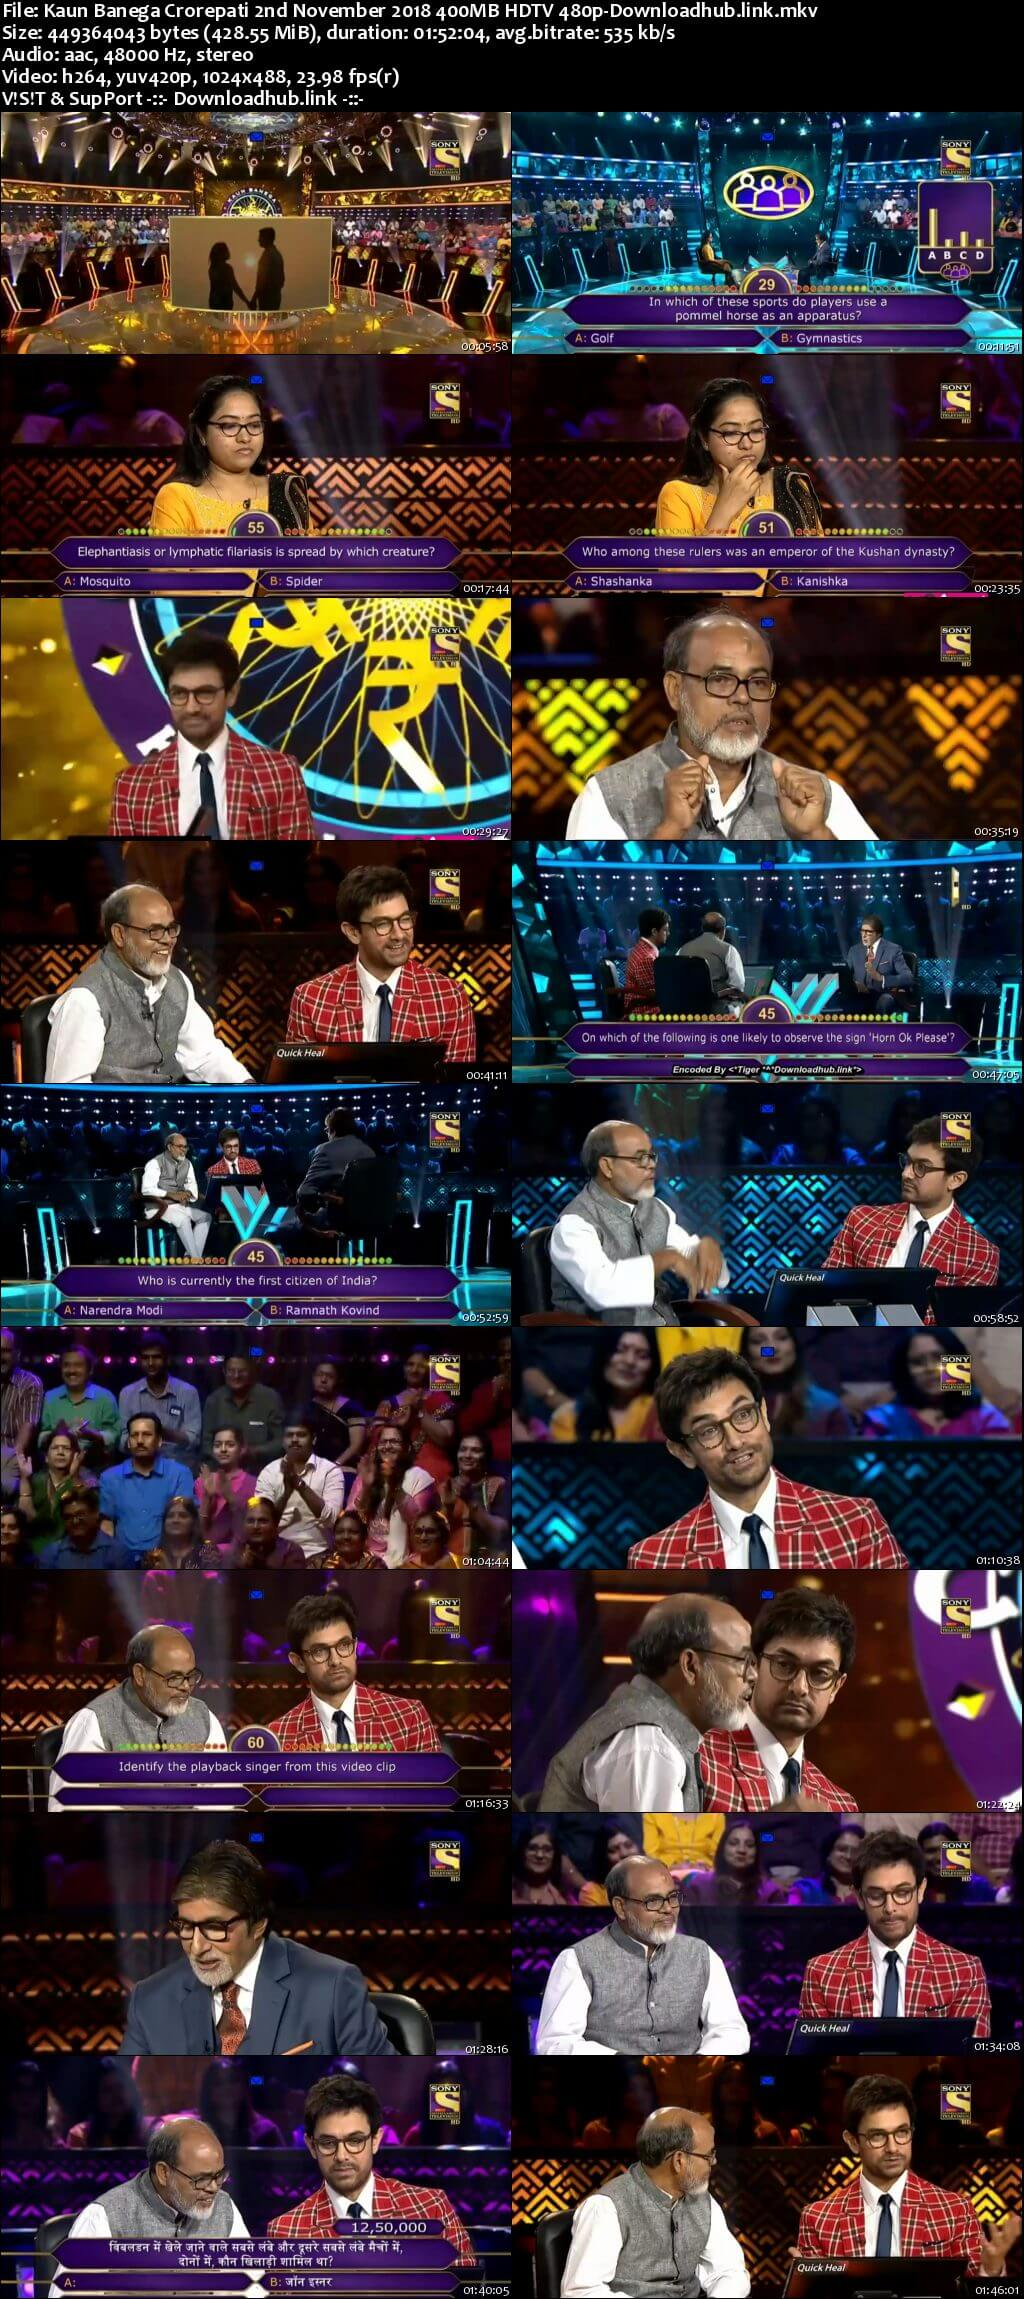 Kaun Banega Crorepati 2nd November 2018 400MB HDTV 480p